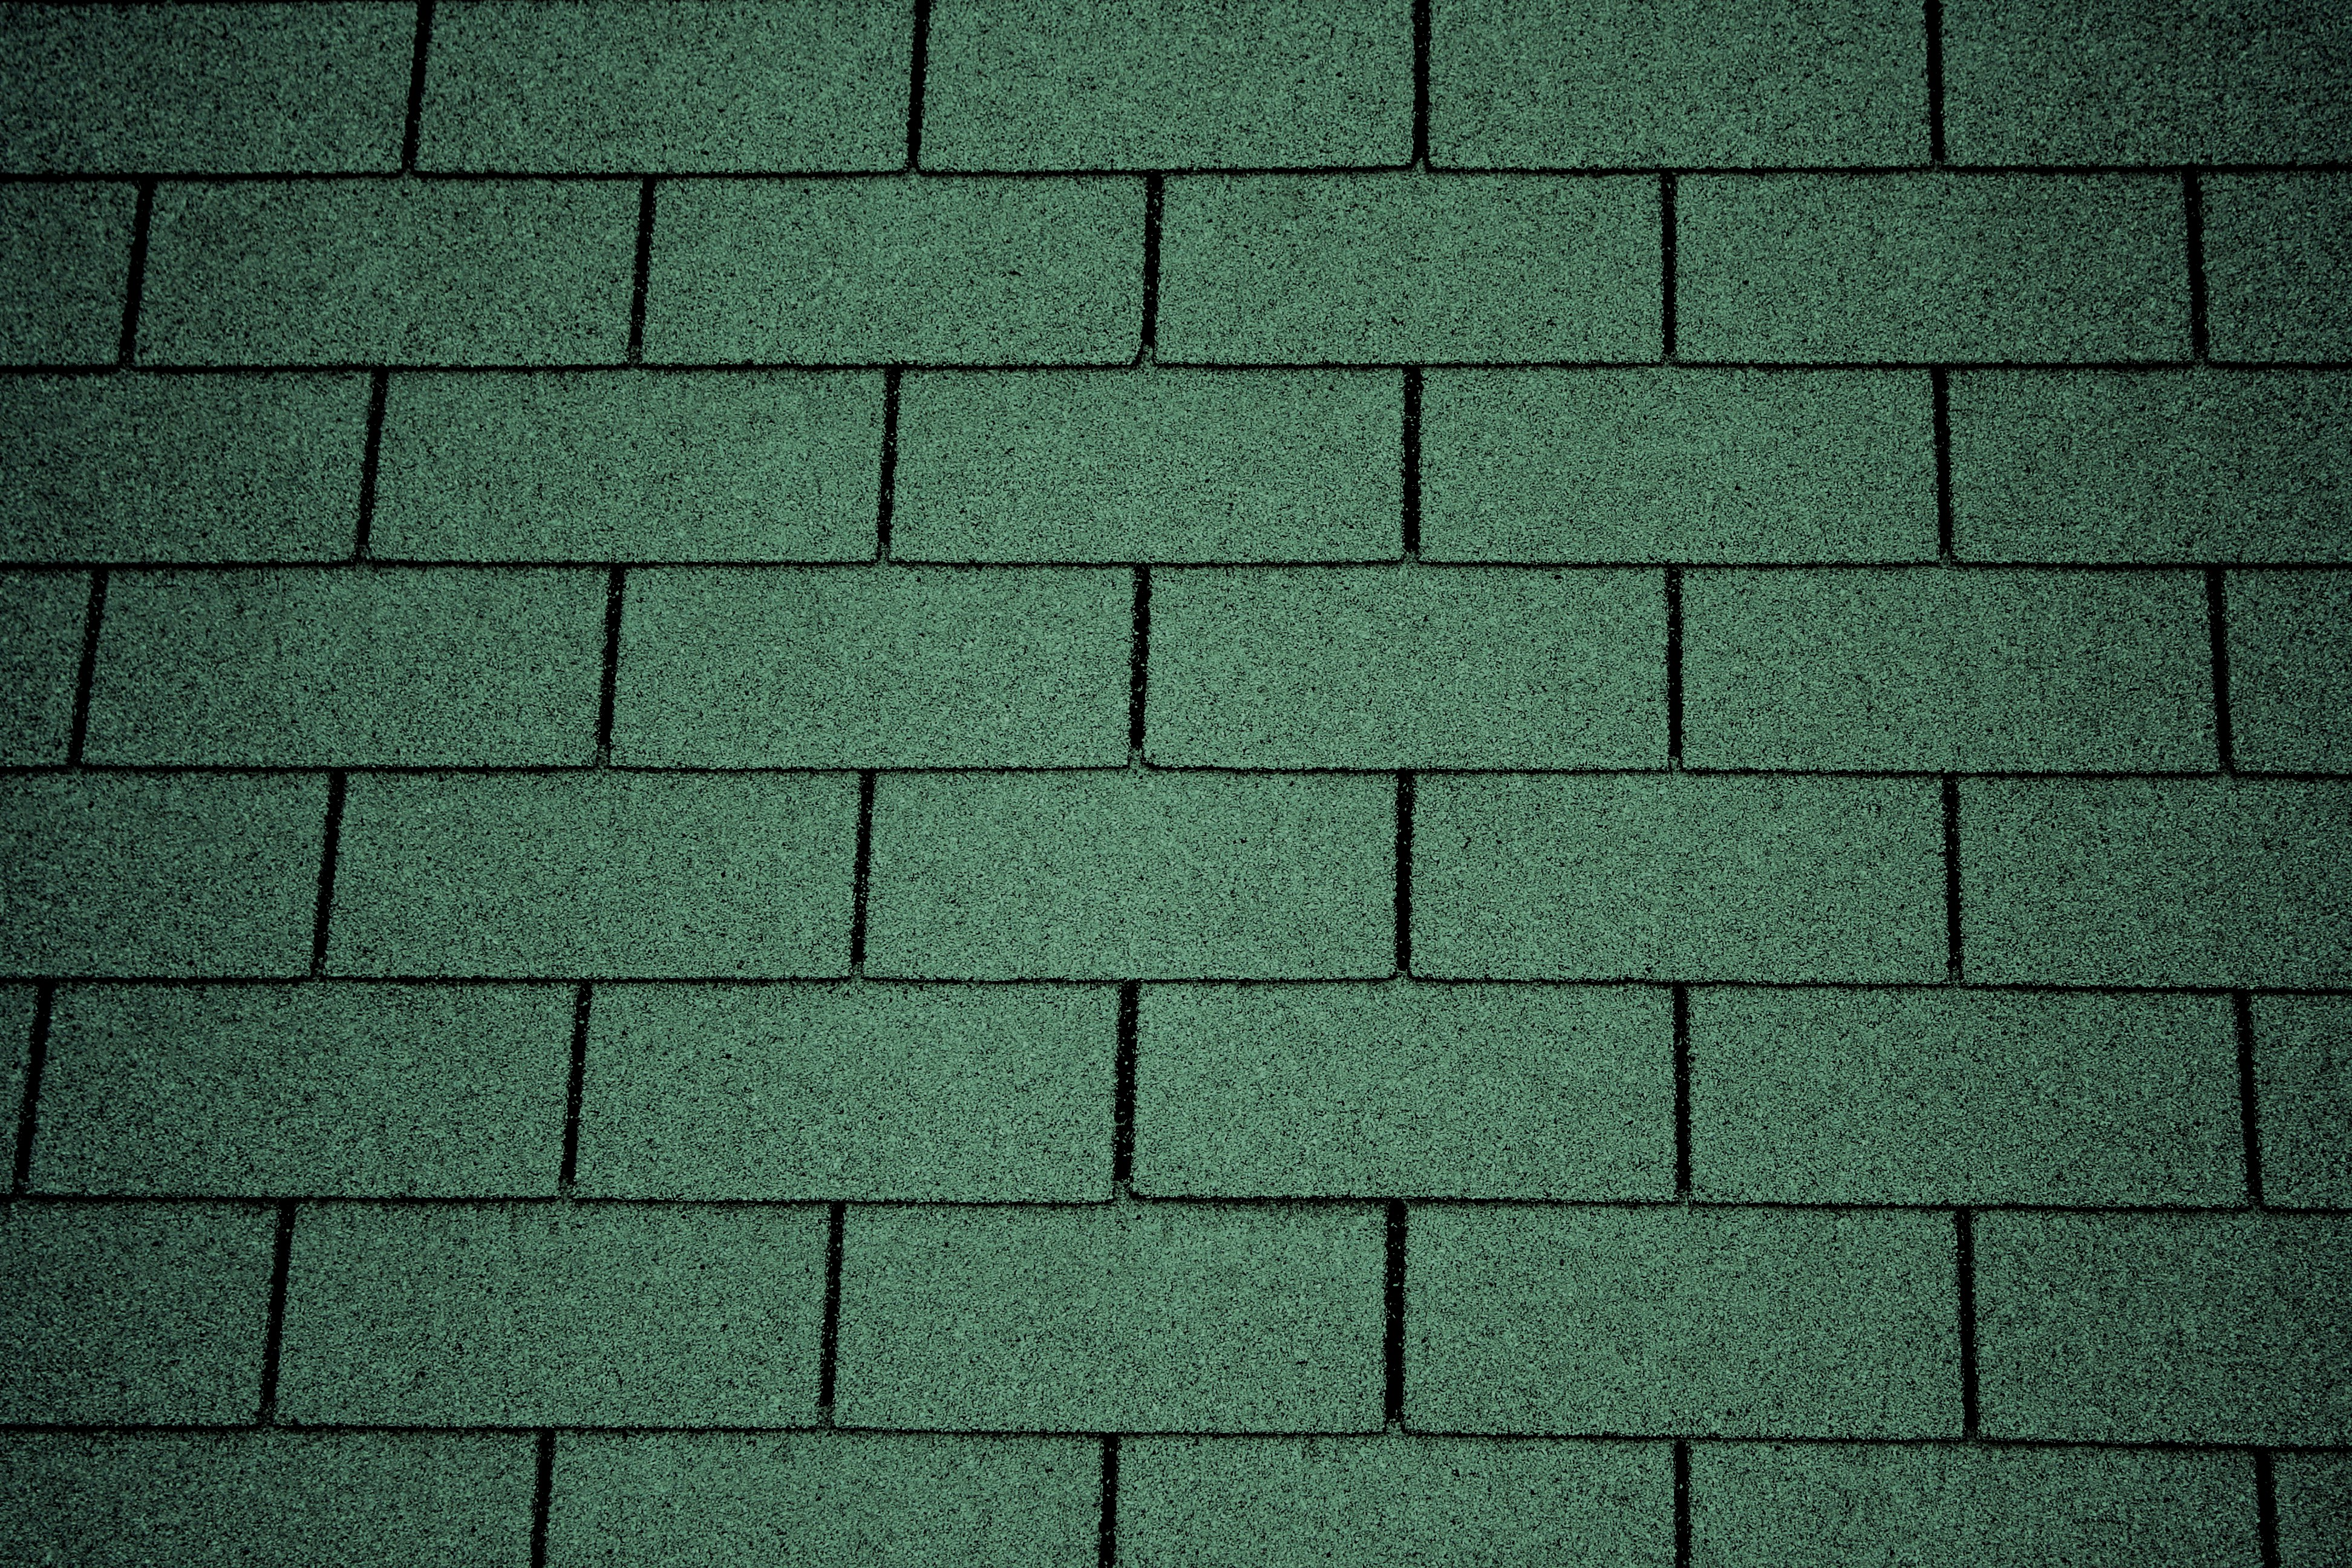 Green Asphalt Roof Shingles Texture Picture Free